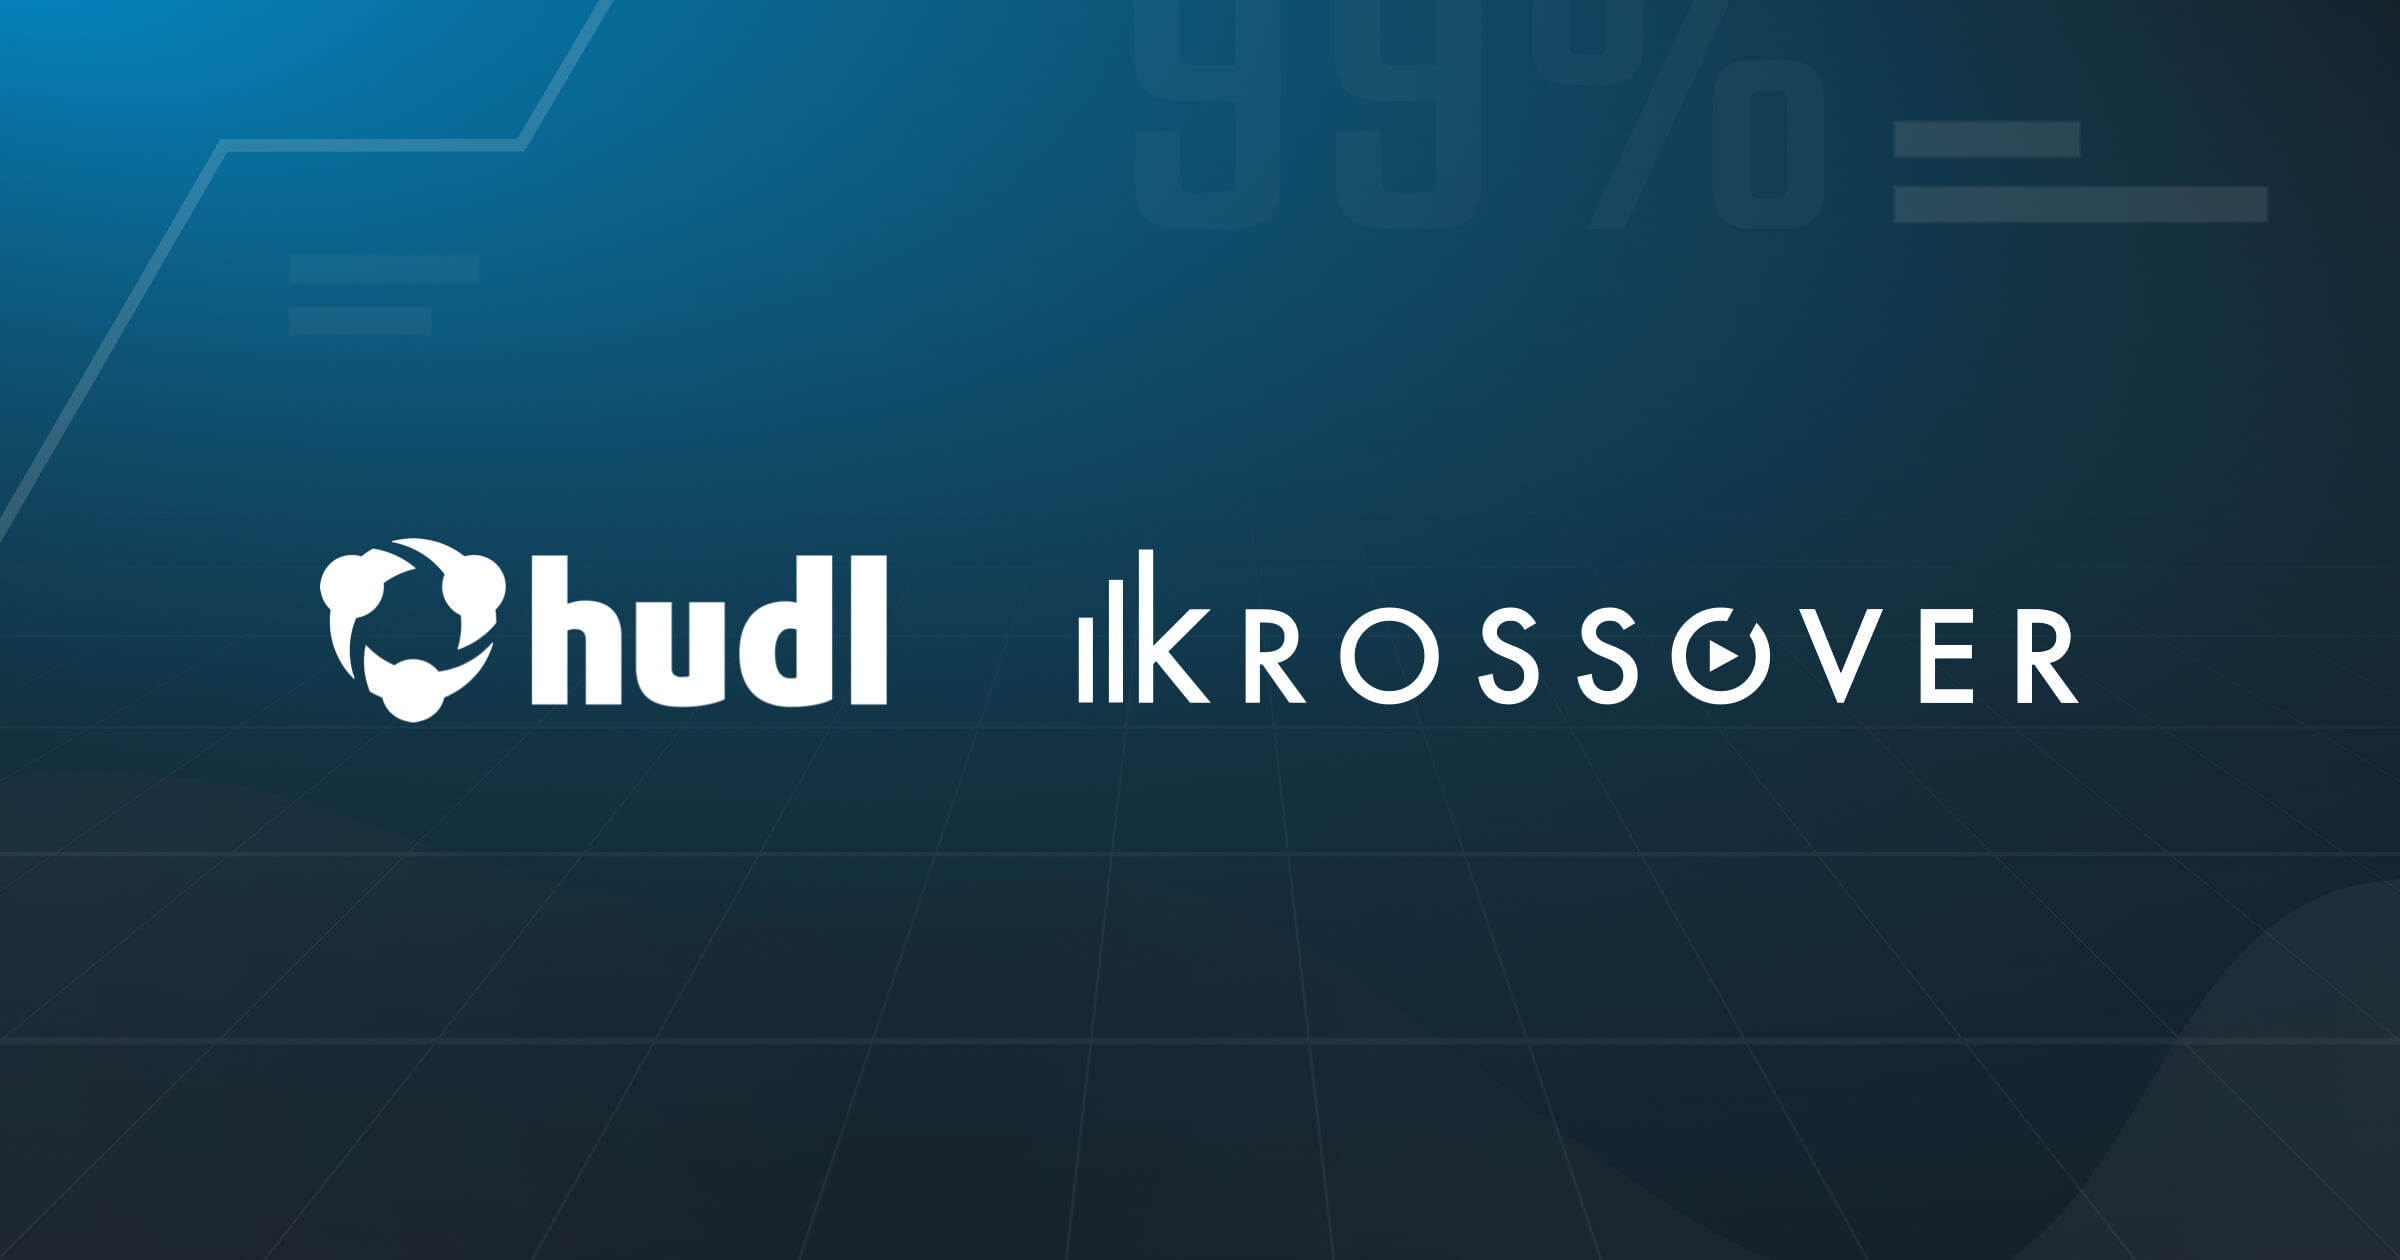 What's Next for Hudl and Krossover